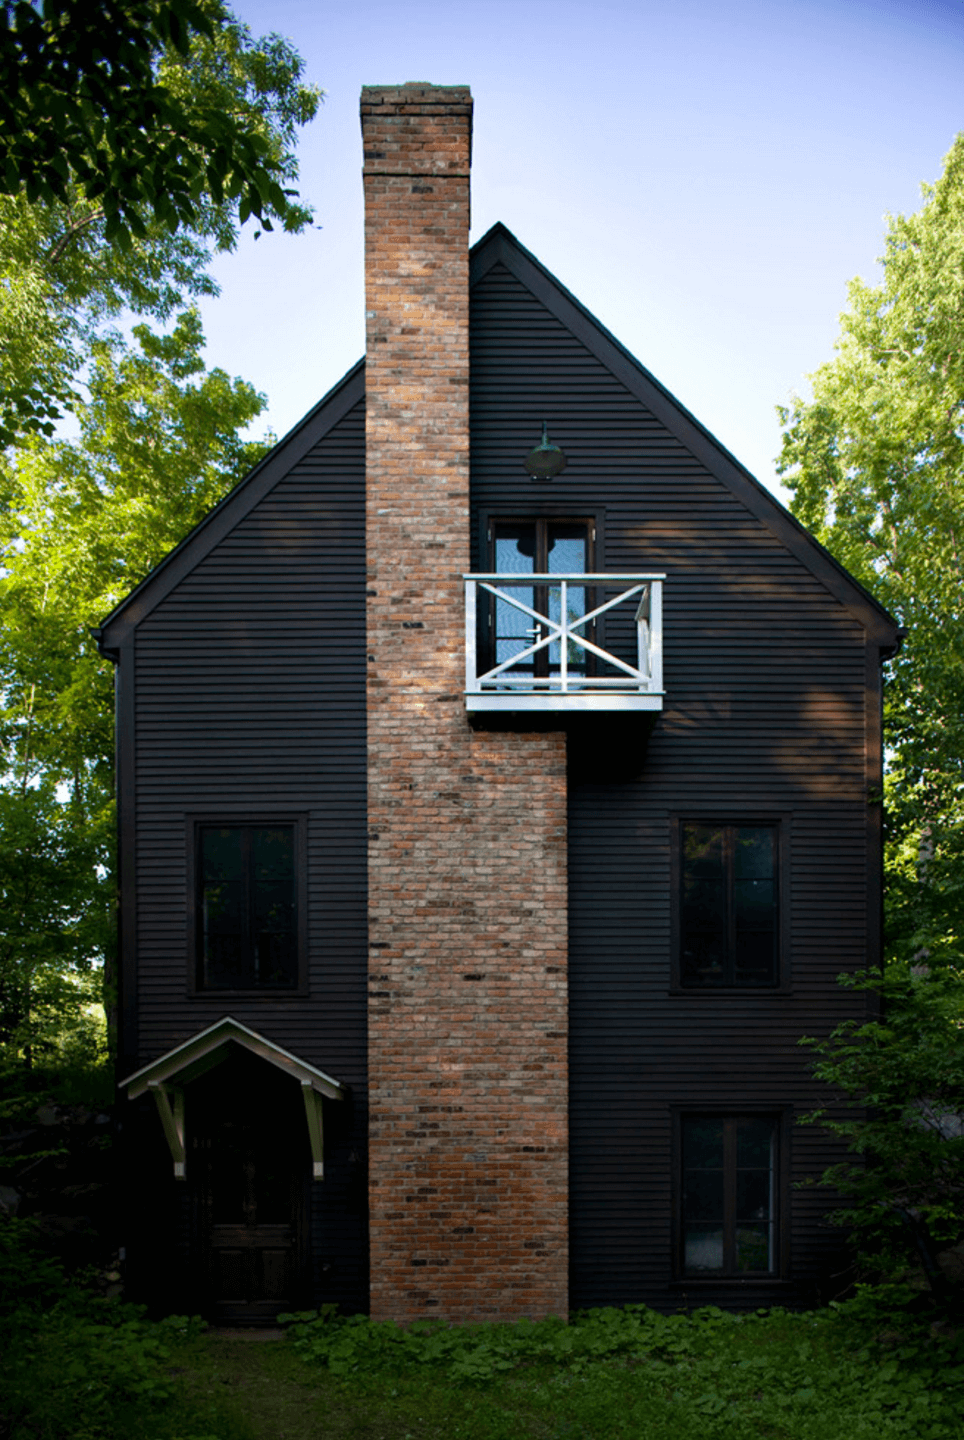 Black Exterior Ideas For A Hauntingly Beautiful Home - Home-exterior-siding